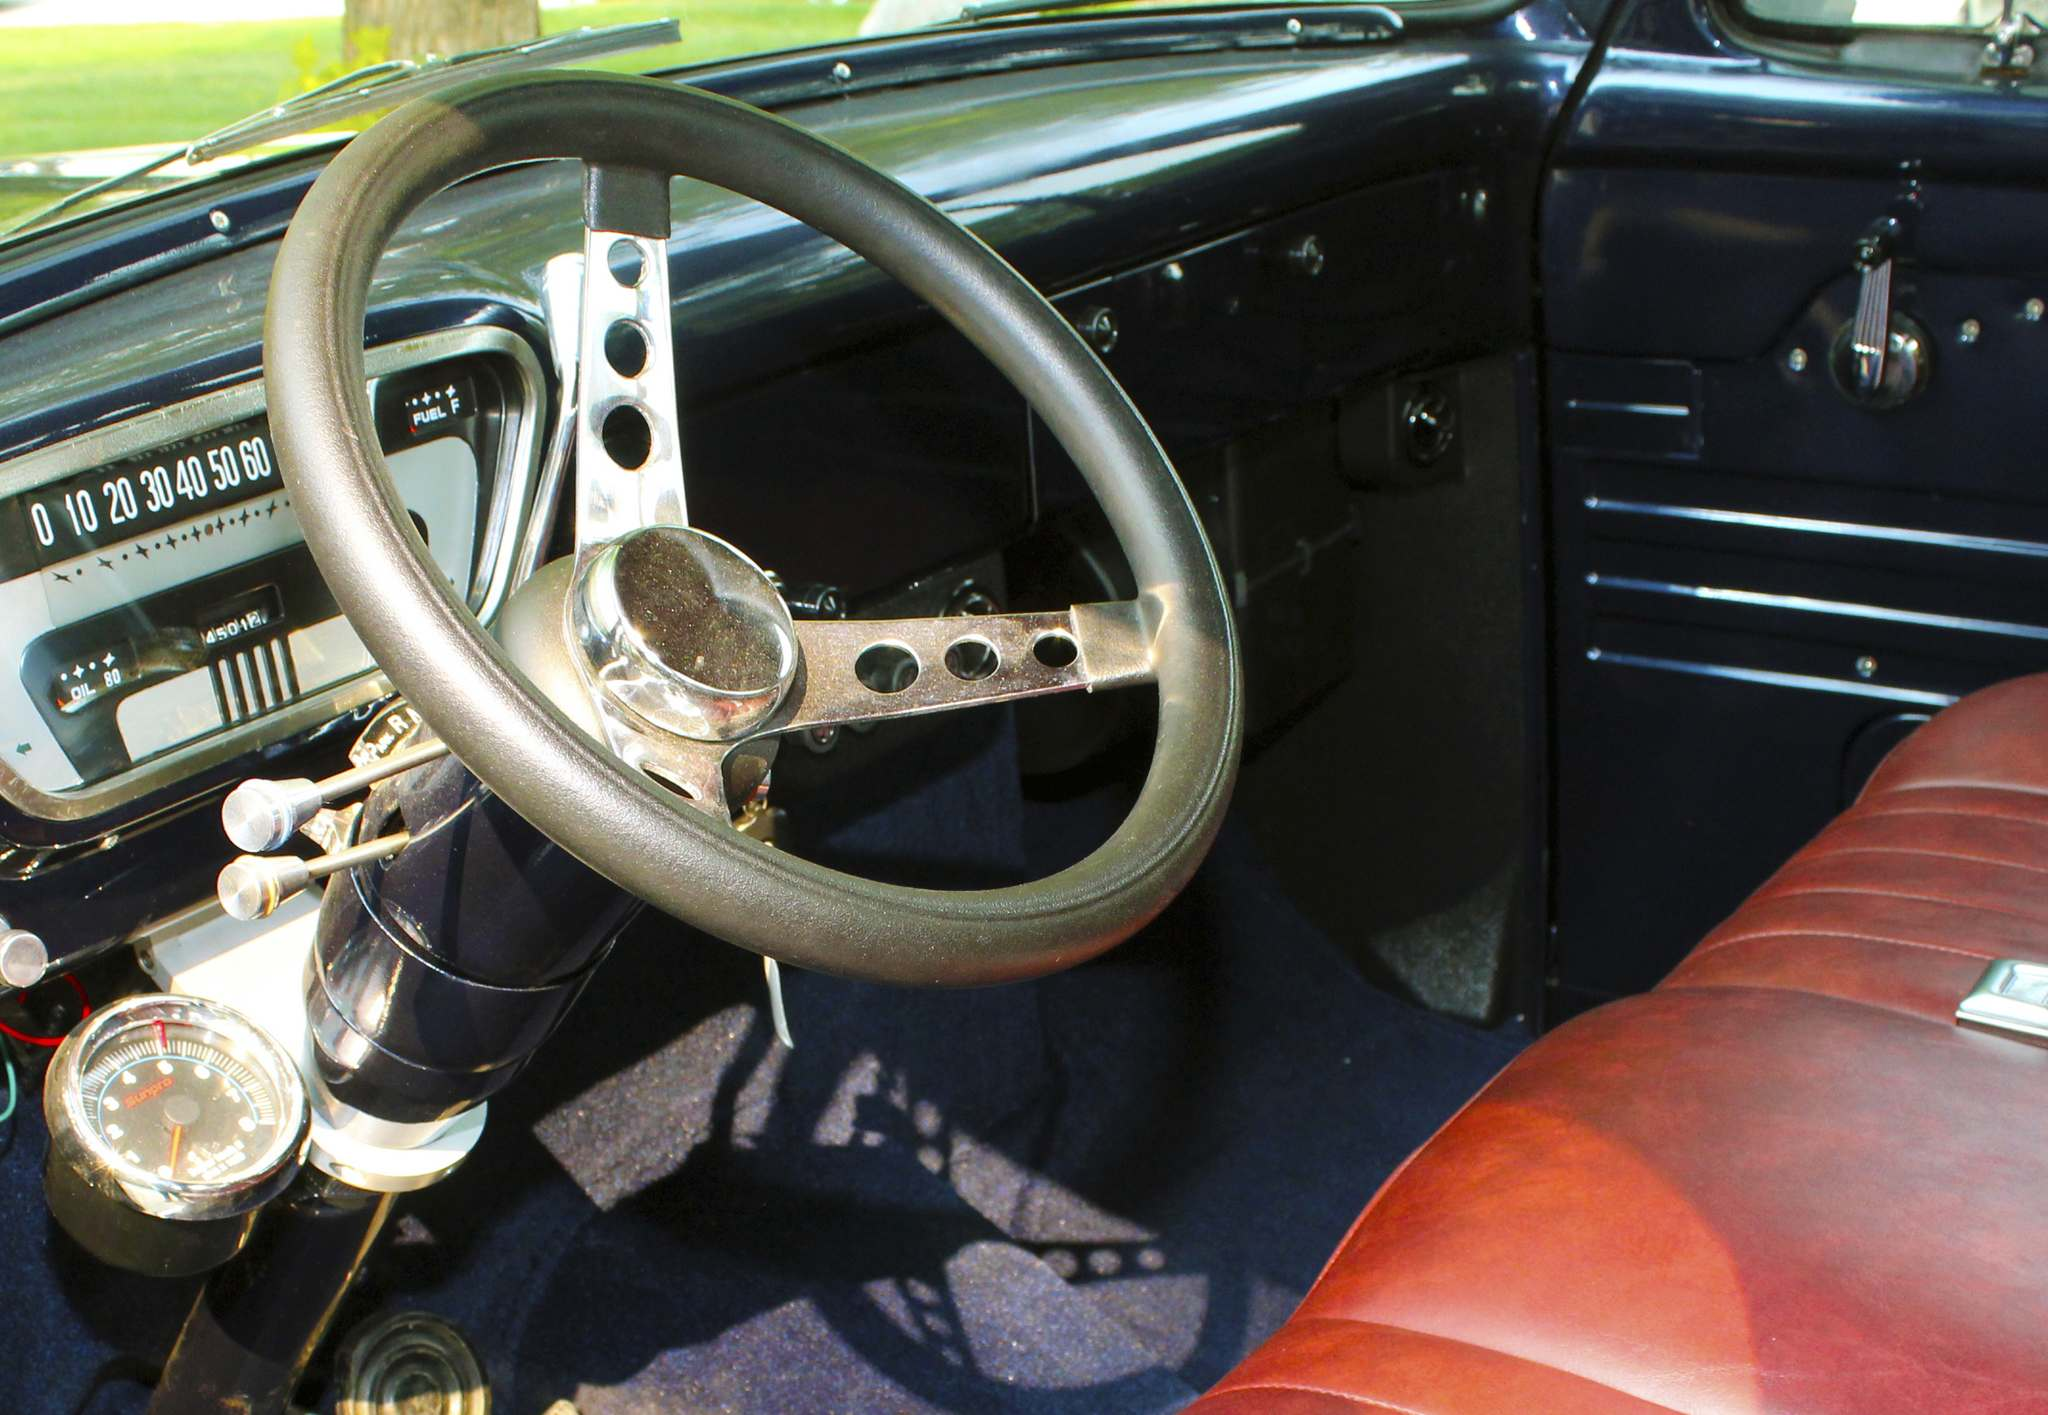 Inside the cab, the truck sports an Ididit tilt steering column and custom steering wheel.